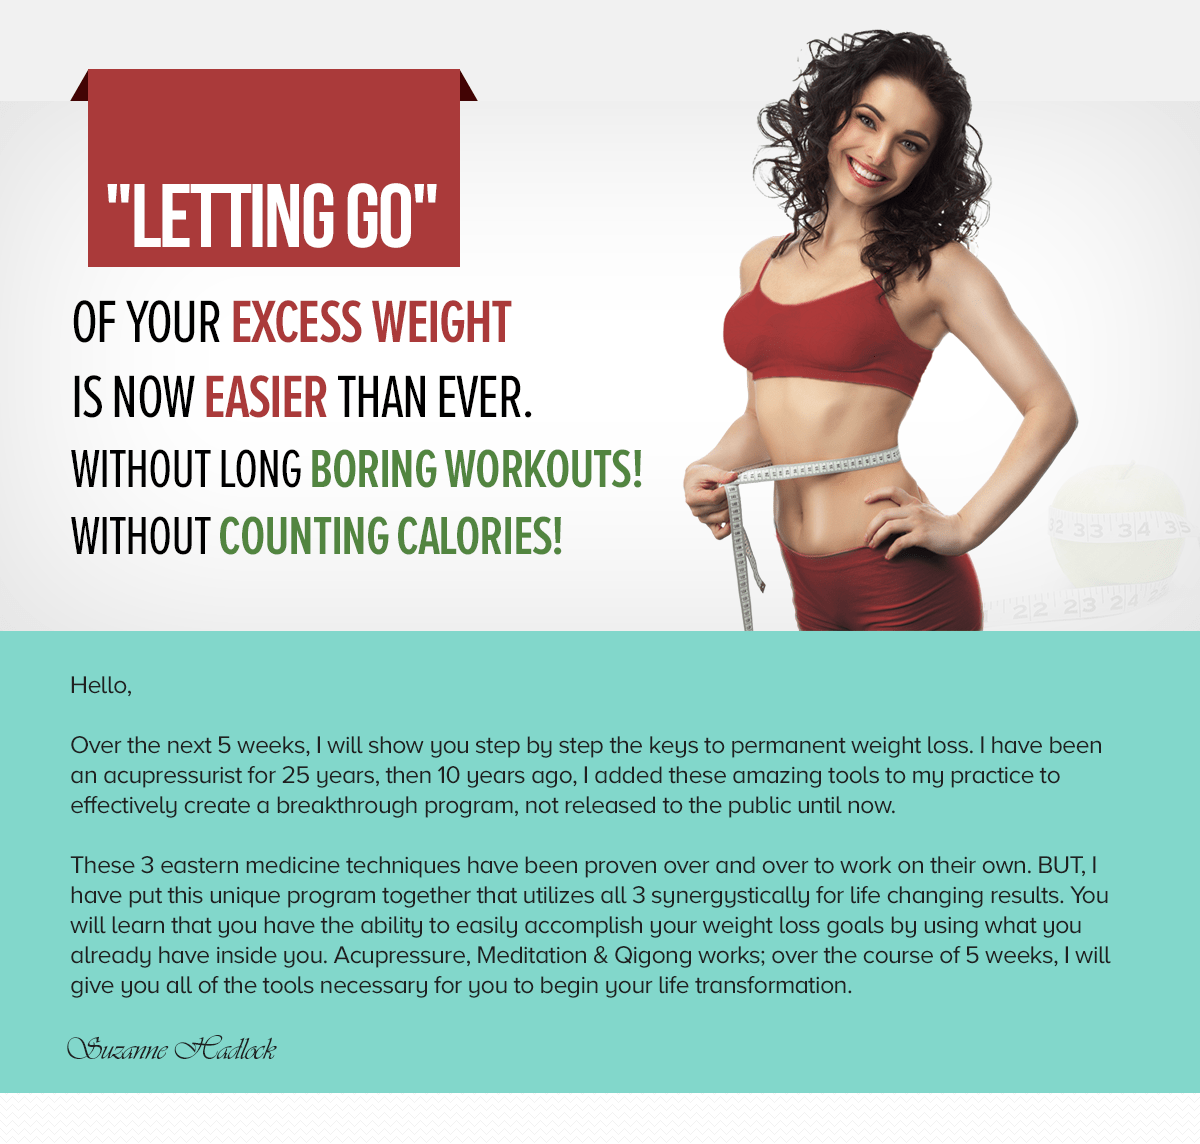 """Letting Go"" Of Your Excess Weight Forever!"